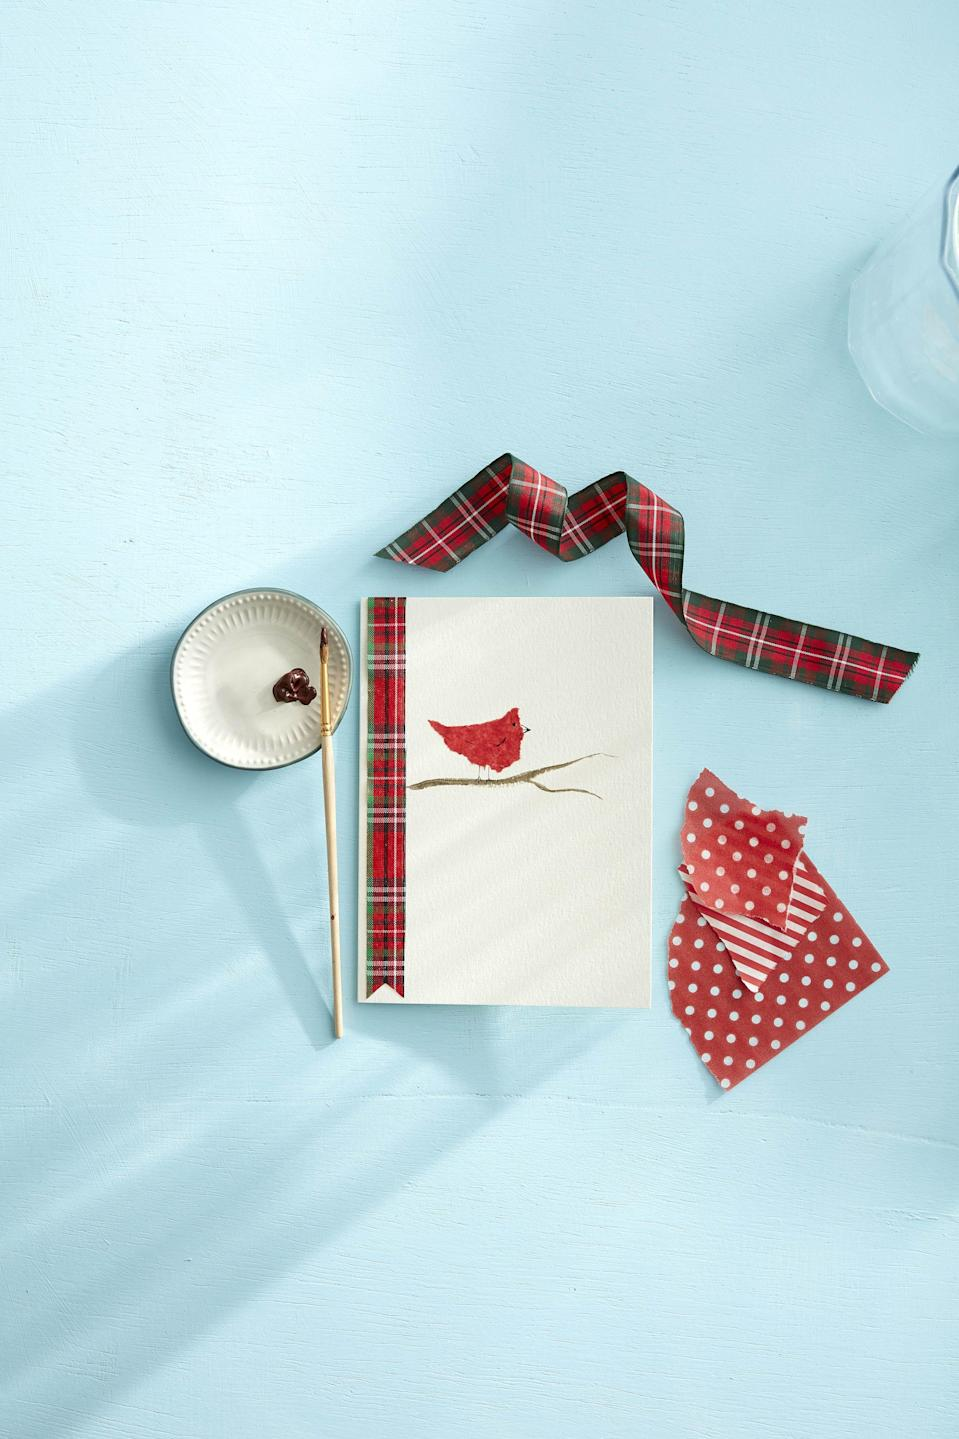 """<p>Looking for DIY Christmas card ideas? We've rounded up our all-time favorite pretty, funny, and crafty card ideas. Each comes with easy-to-follow instructions and tutorials so crafting will be a cinch. These DIY Christmas cards are so simple to craft and take very little time to throw together making them loads of fun to share with friends and family. Want to go the extra mile? Make a <a href=""""https://www.countryliving.com/diy-crafts/tips/g645/crafty-christmas-presents-ideas/"""" rel=""""nofollow noopener"""" target=""""_blank"""" data-ylk=""""slk:DIY Christmas gift"""" class=""""link rapid-noclick-resp"""">DIY Christmas gift</a>, too. Believe it or not, some of the cards we've included here can be whipped up in a matter of minutes, so you can spend more time on decorating your tree! </p><p>Still, as easy as the crafting process is, you can be certain that every ounce of extra effort you put into these cards is sure to be appreciated by all their recipients. After all, a handmade Christmas card signals to its reader that you put time (even if it isn't a lot), thought, and care into its creation and it ultimately reminds them just how much you care. Whether it accompanies a sweet-smelling, freshly baked <a href=""""https://www.countryliving.com/food-drinks/g1059/homemade-food-gifts/"""" rel=""""nofollow noopener"""" target=""""_blank"""" data-ylk=""""slk:Christmas food gift"""" class=""""link rapid-noclick-resp"""">Christmas food gift</a> or dangles off of an equally special homemade ornament, your <a href=""""https://www.countryliving.com/diy-crafts/how-to/g903/holiday-craft-projects-1209/"""" rel=""""nofollow noopener"""" target=""""_blank"""" data-ylk=""""slk:holiday craft project"""" class=""""link rapid-noclick-resp"""">holiday craft project</a> <em>will </em>get noticed. </p><p>And of course, you don't need to DIY every element of your Christmas gifts. Even a store-bought <a href=""""https://www.countryliving.com/shopping/gifts/g1542/christmas-gifts-for-mom/"""" rel=""""nofollow noopener"""" target=""""_blank"""" data-ylk=""""slk:Christmas gift for Mom"""" class=""""lin"""